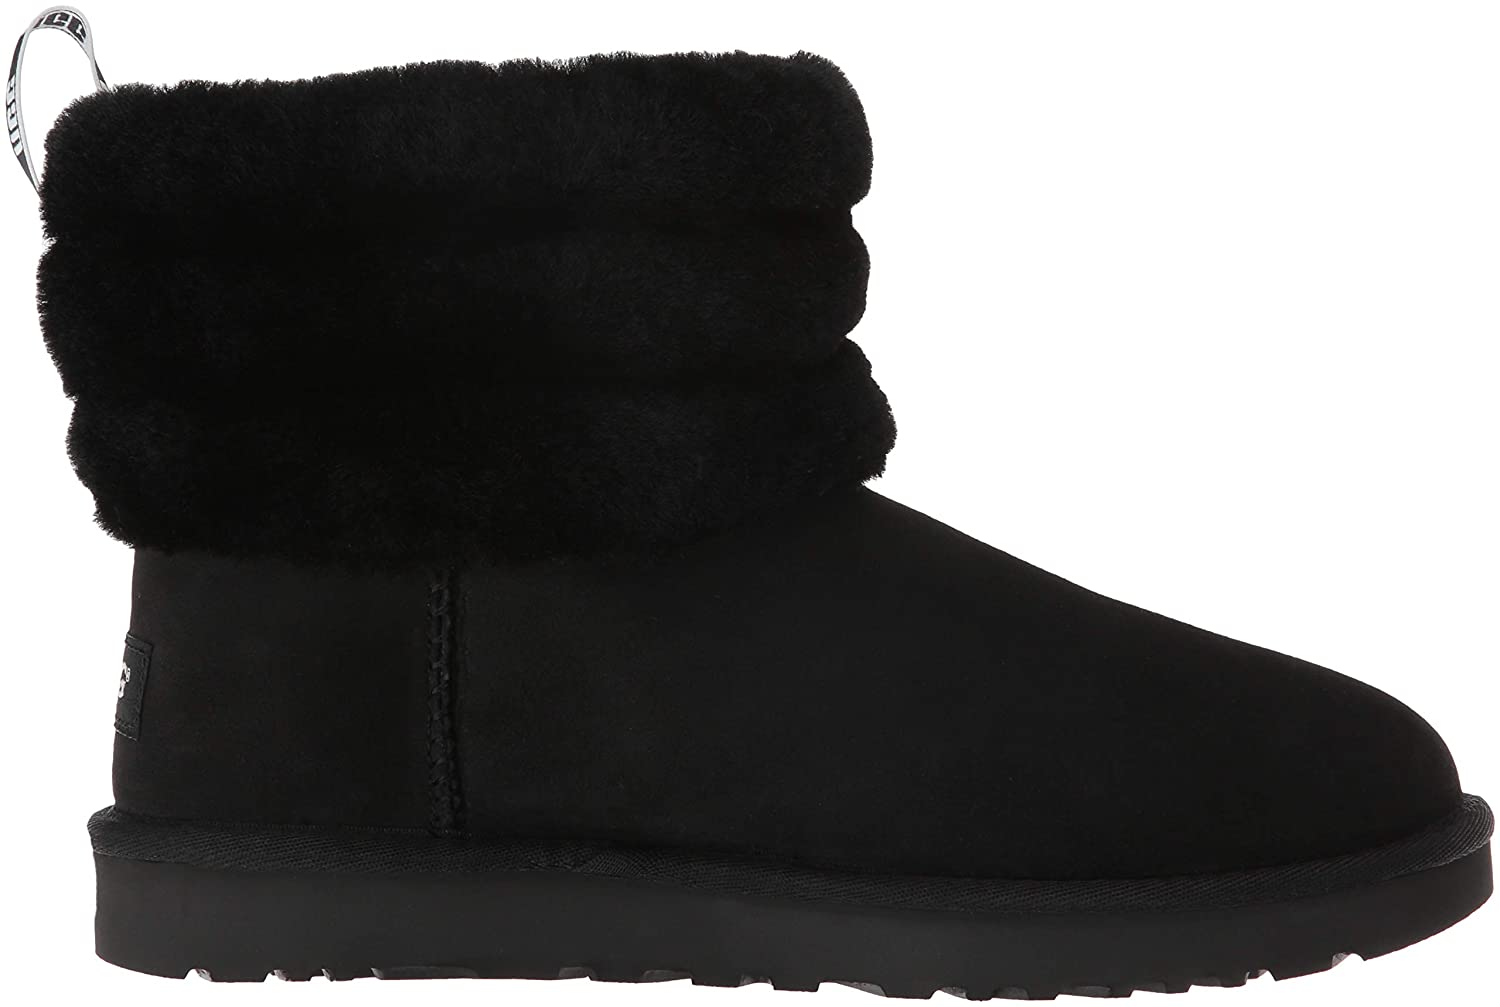 4001eff5f8e UGG Women's W Fluff Mini Quilted Fashion Boot